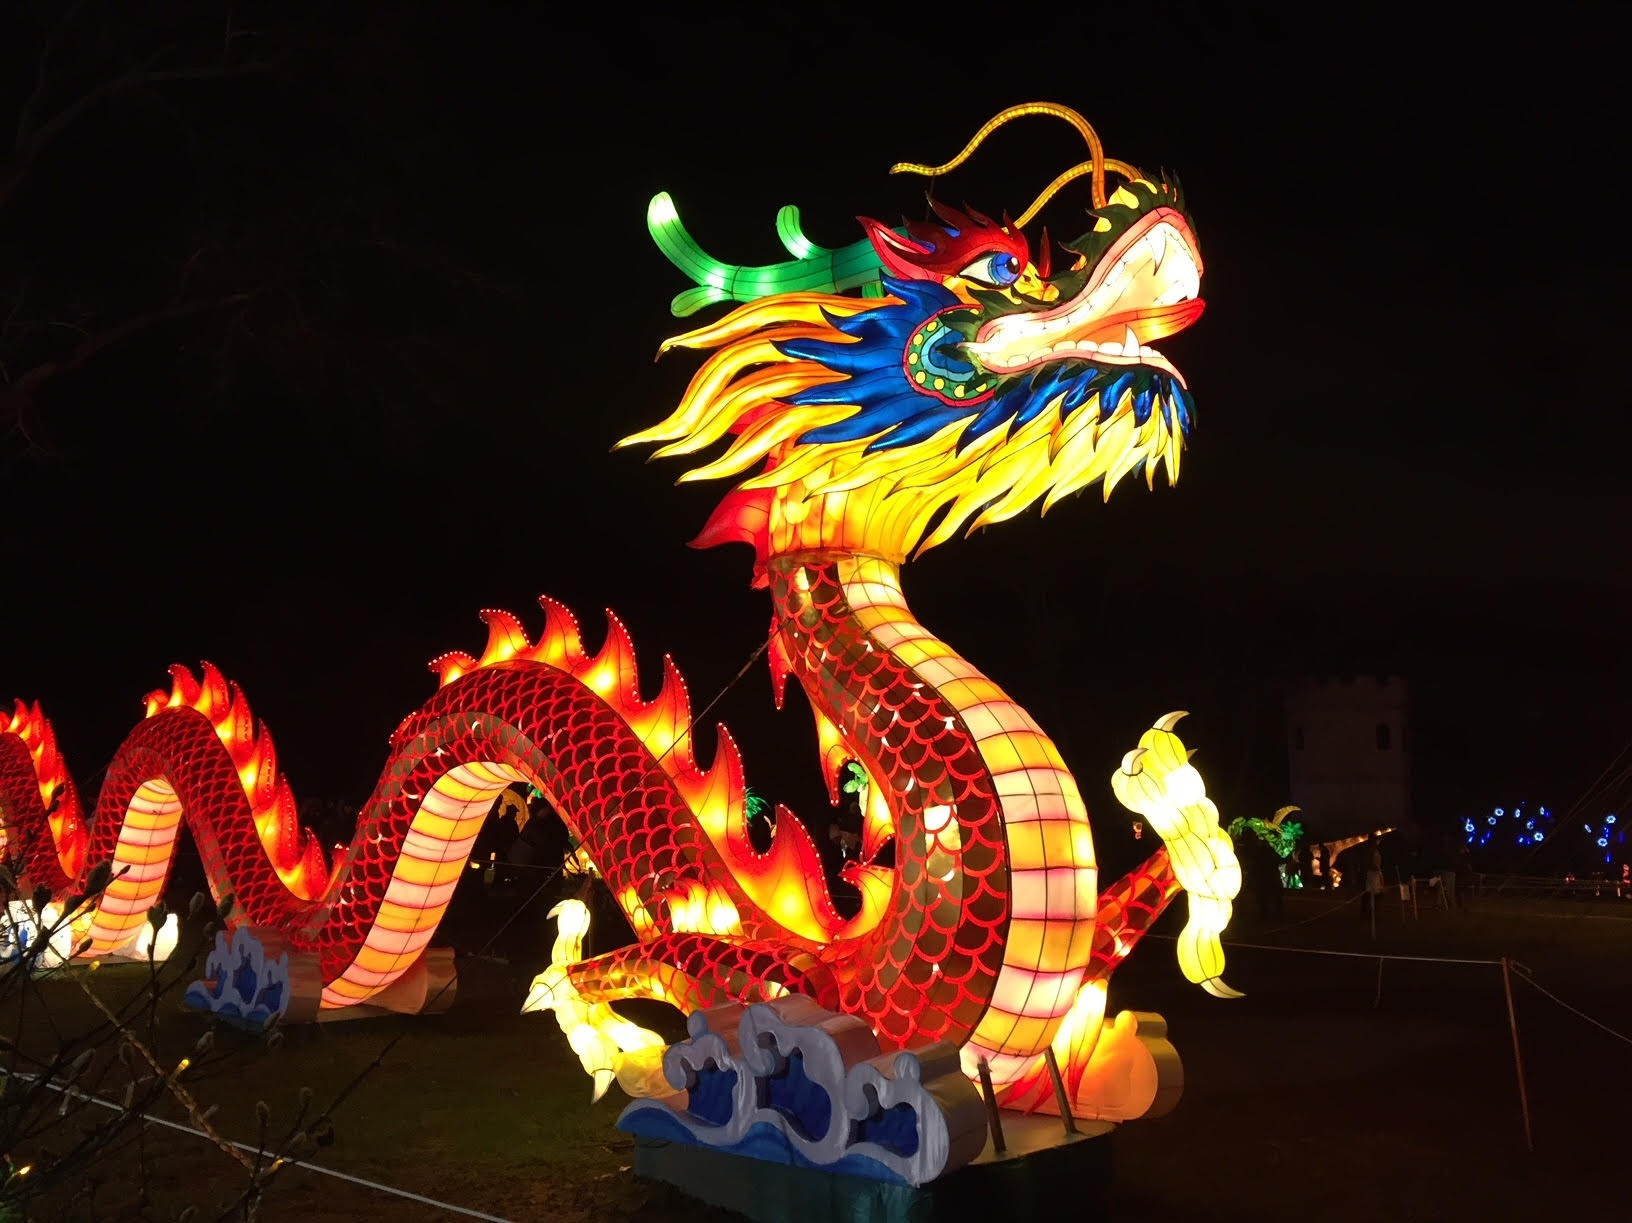 Here's a photo taken from the NYC Lantern Festival (taken January 6, 2019 in the evening, on Staten Island). The lights were bright, but true to the seasonal node it was cold and windy!